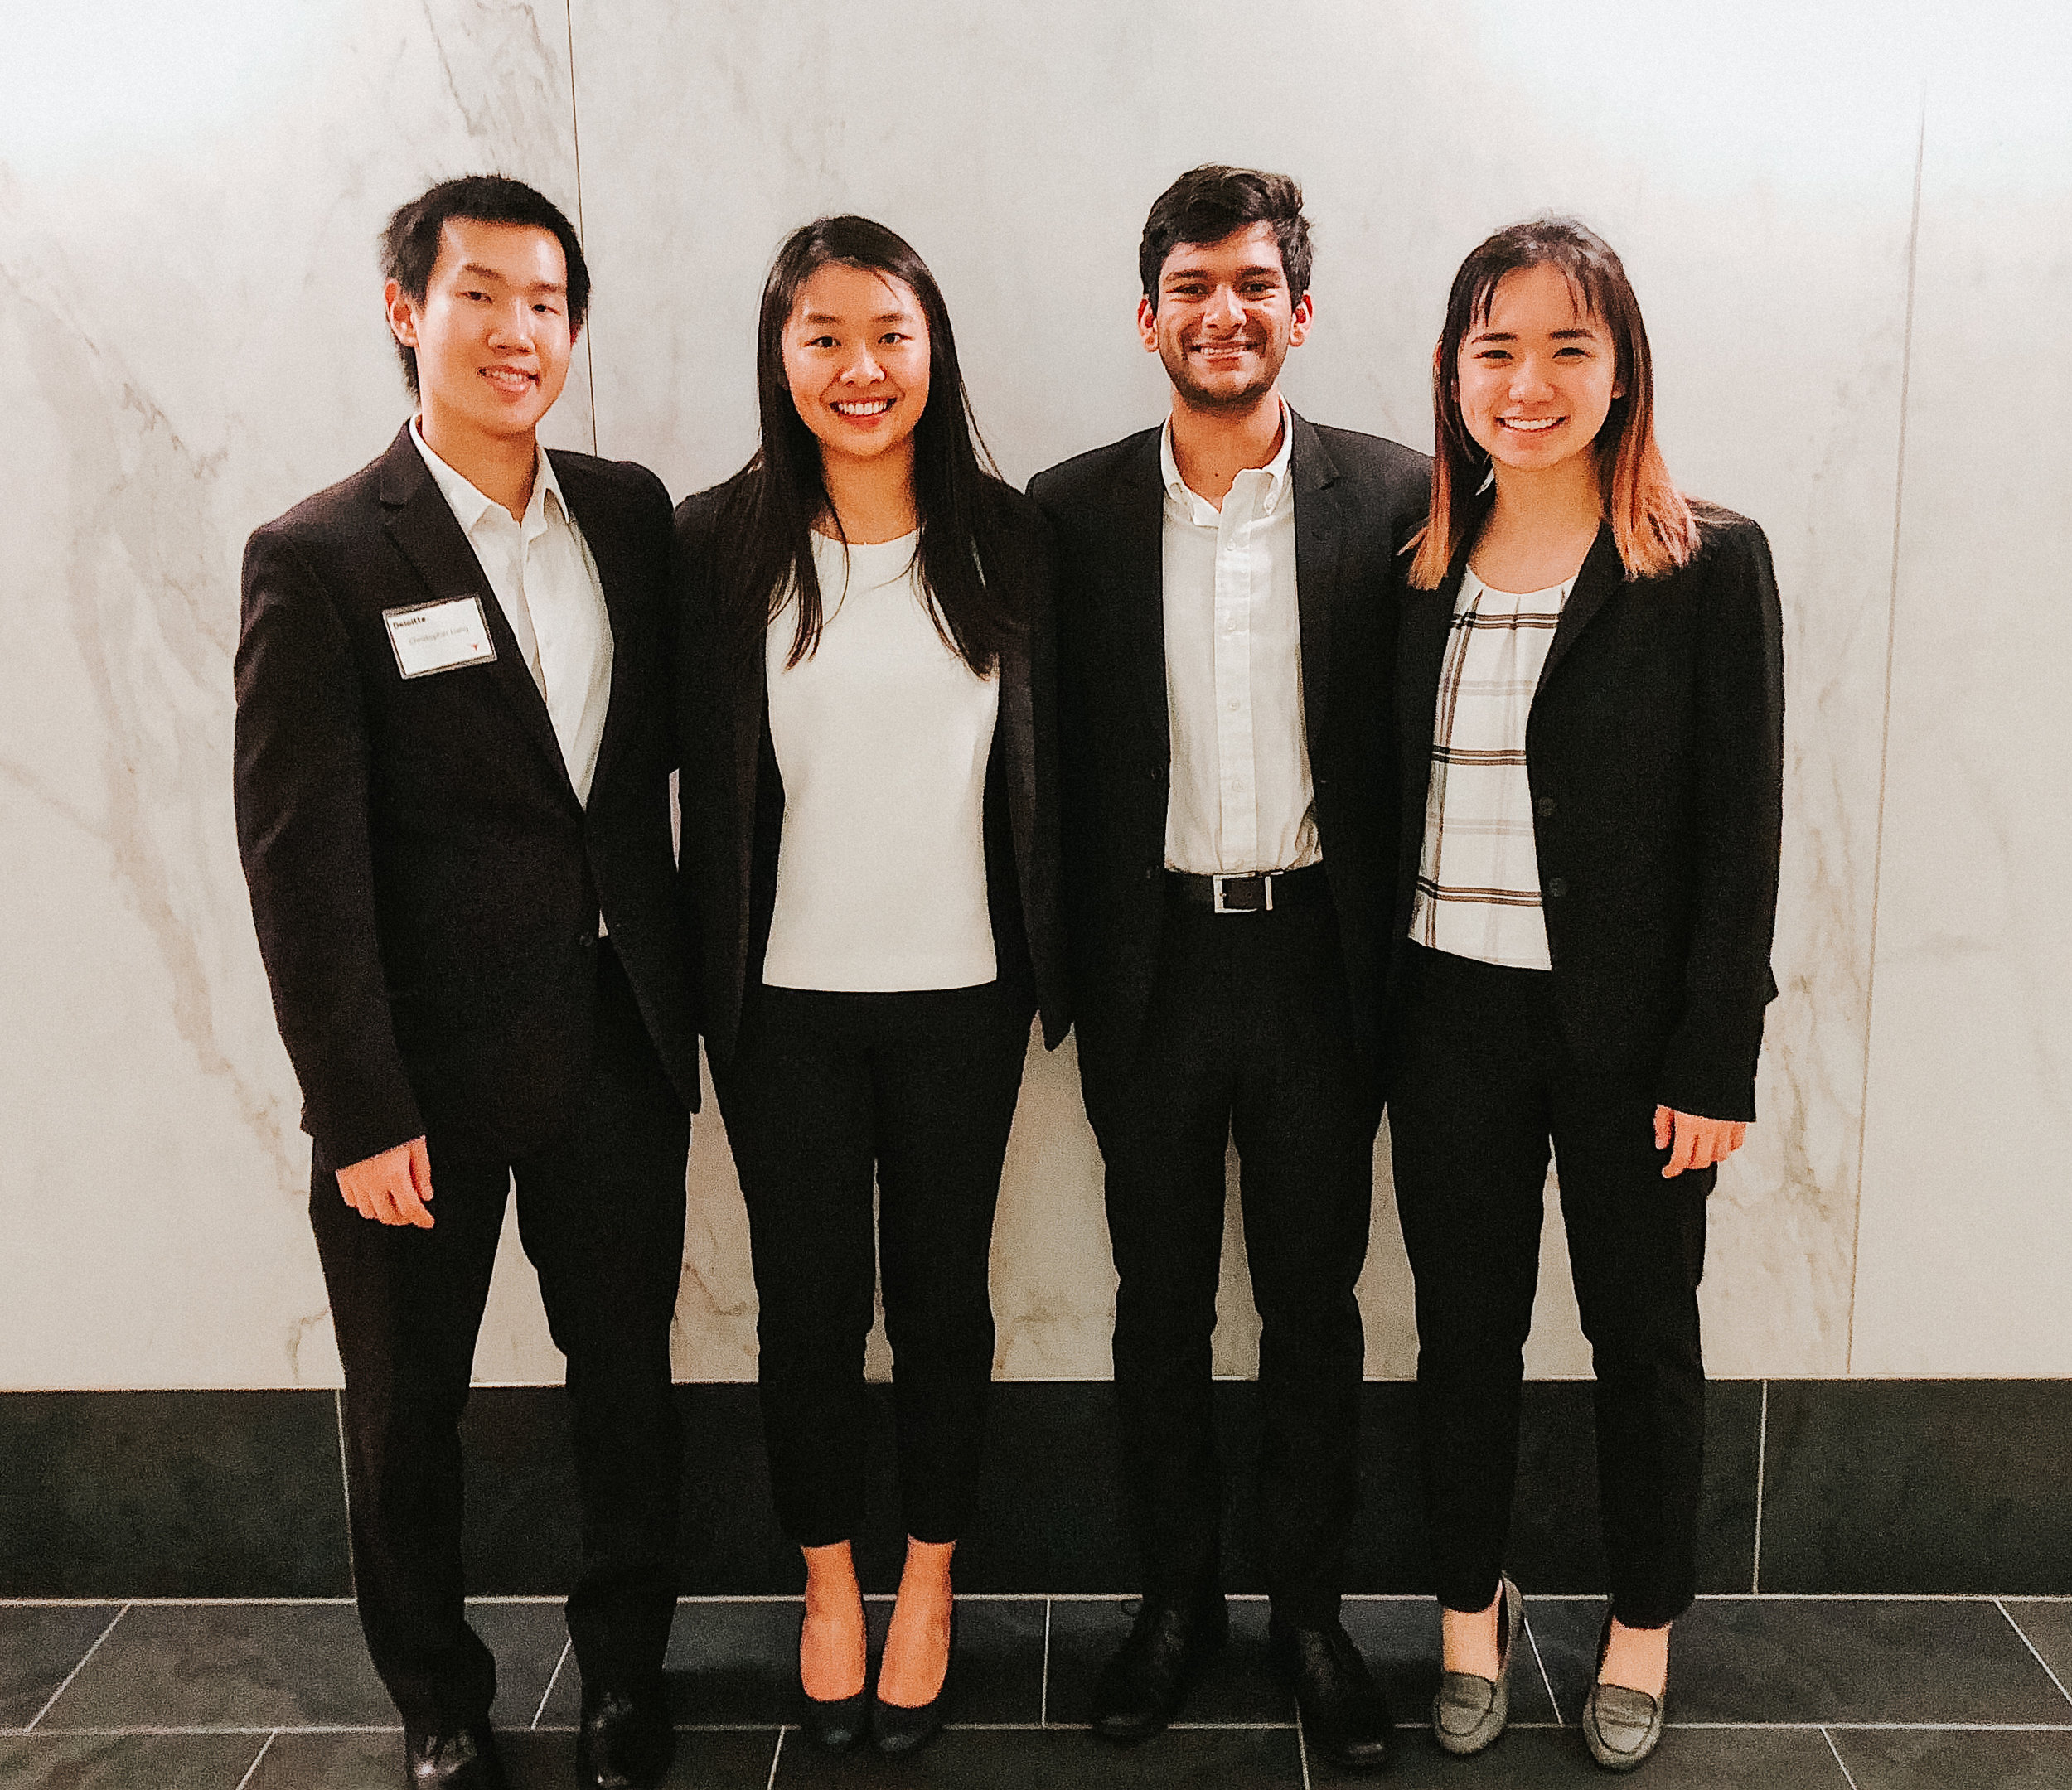 2018 Deloitte Risk and Financial Advisory Regional Case Competition